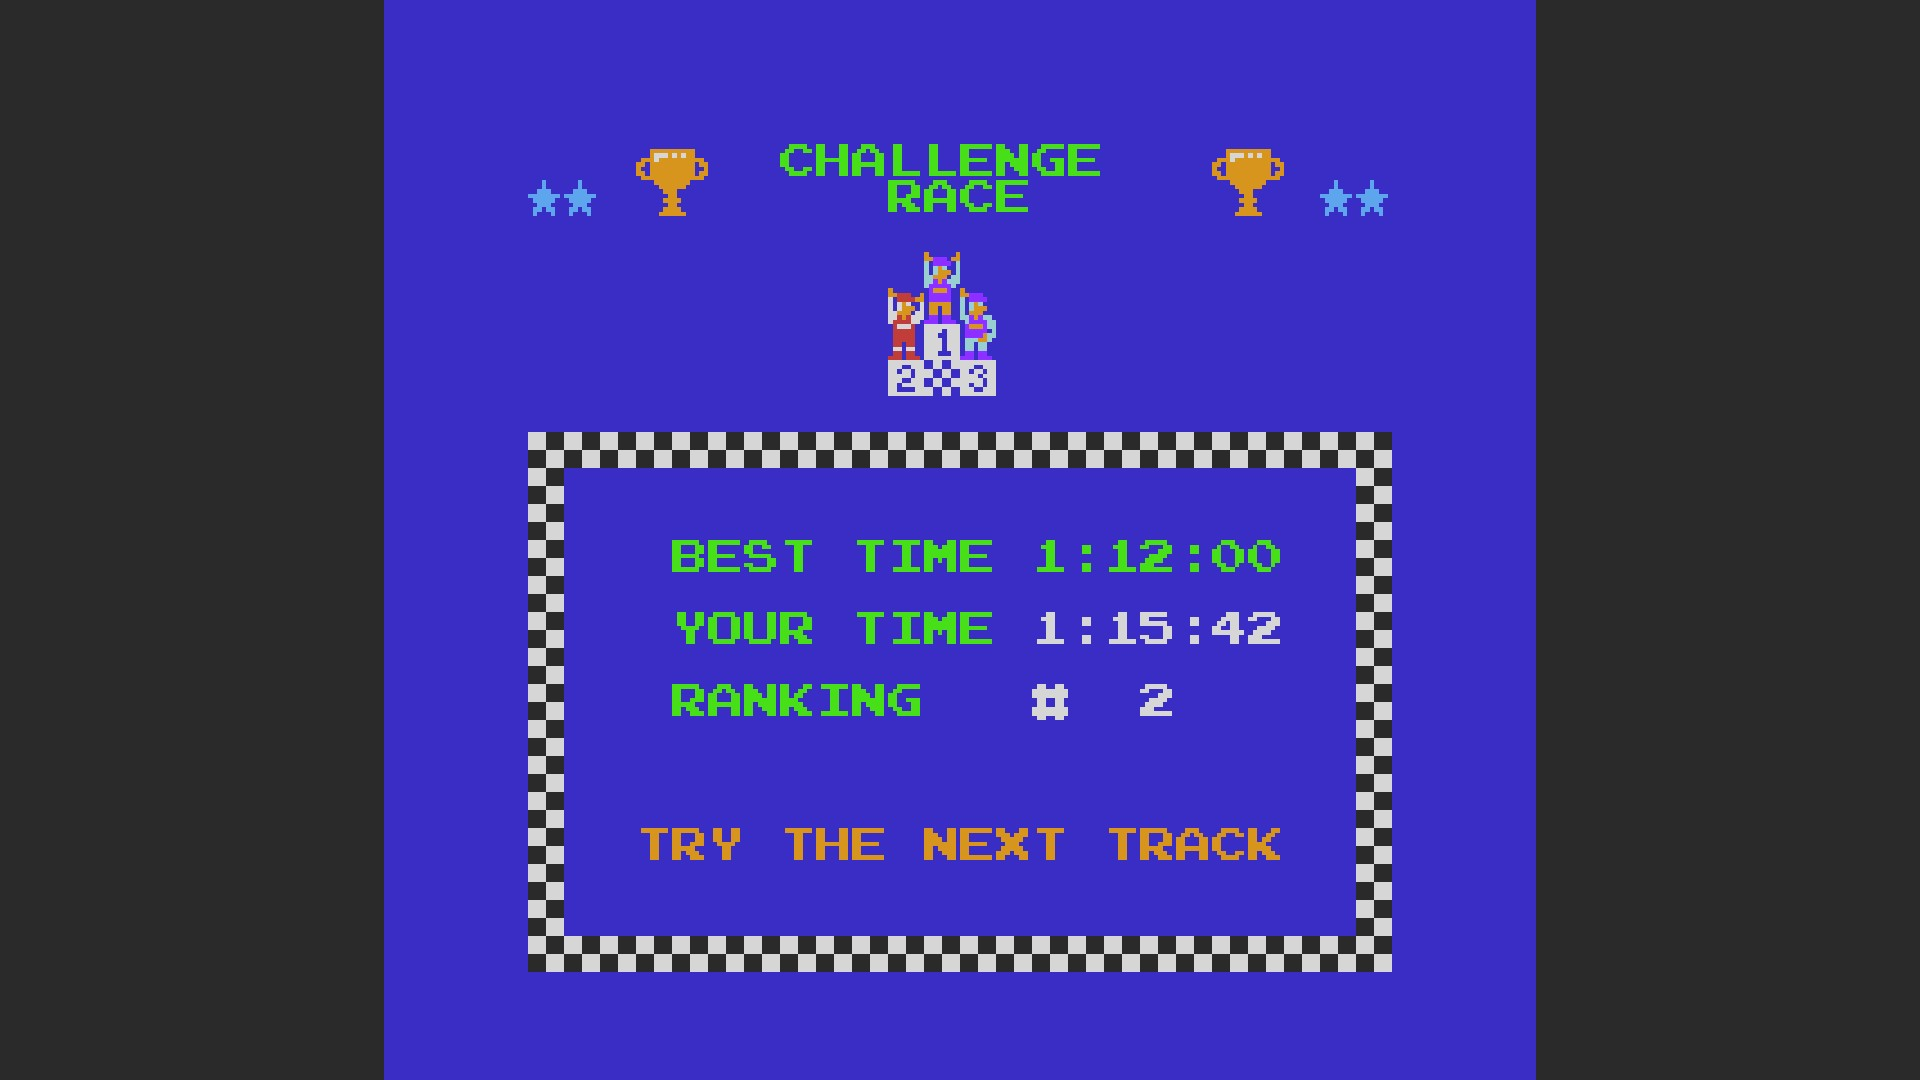 Excitebike: Track 4 time of 0:01:15.42